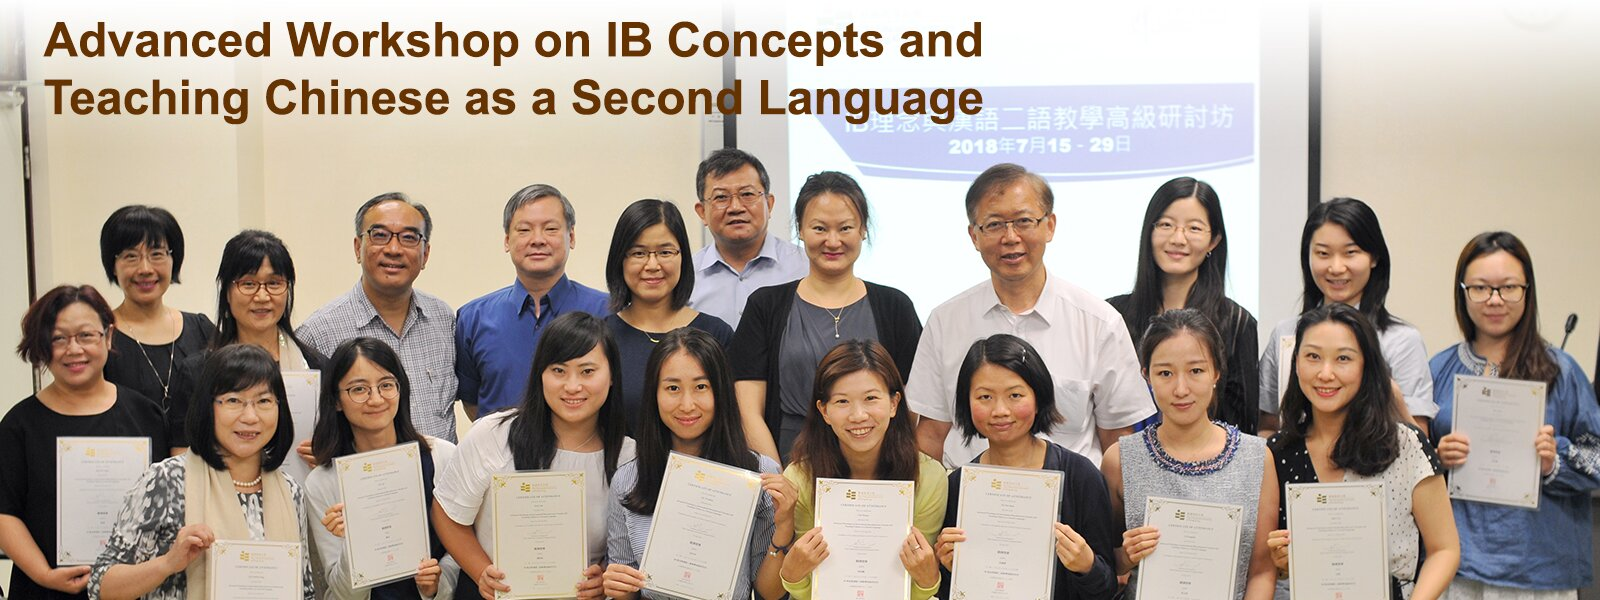 EdUHK Hosts Advanced Workshop on IB Concepts and Teaching Chinese as a Second Language